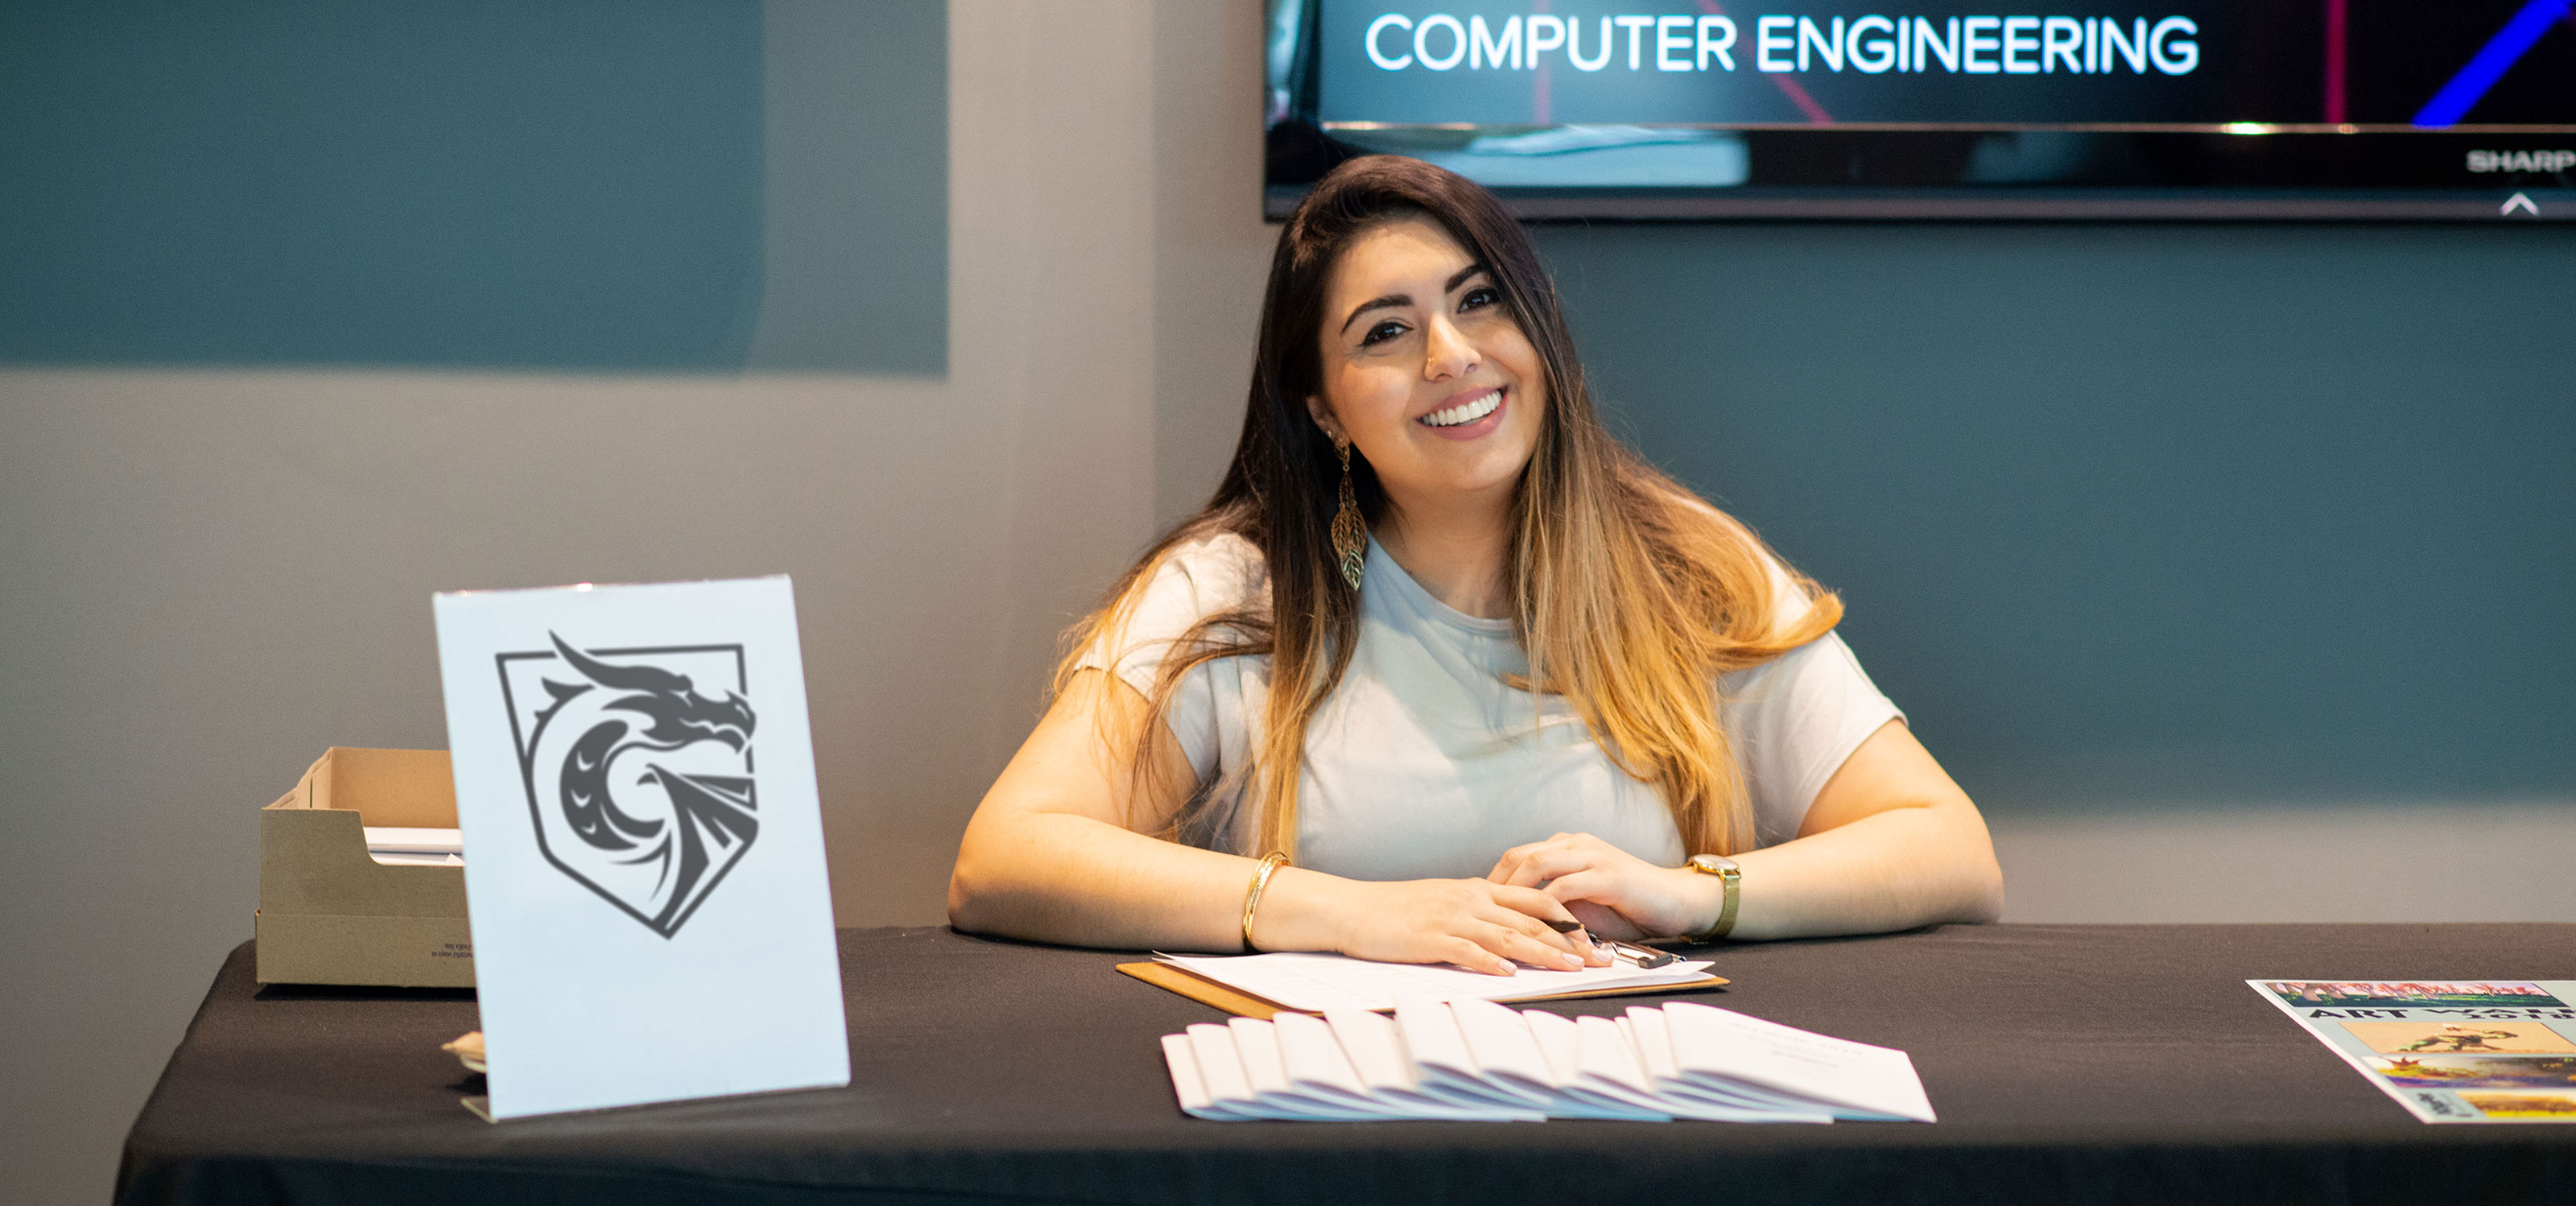 A smiling woman sits at a table welcoming people to an event on DigiPen's campus.